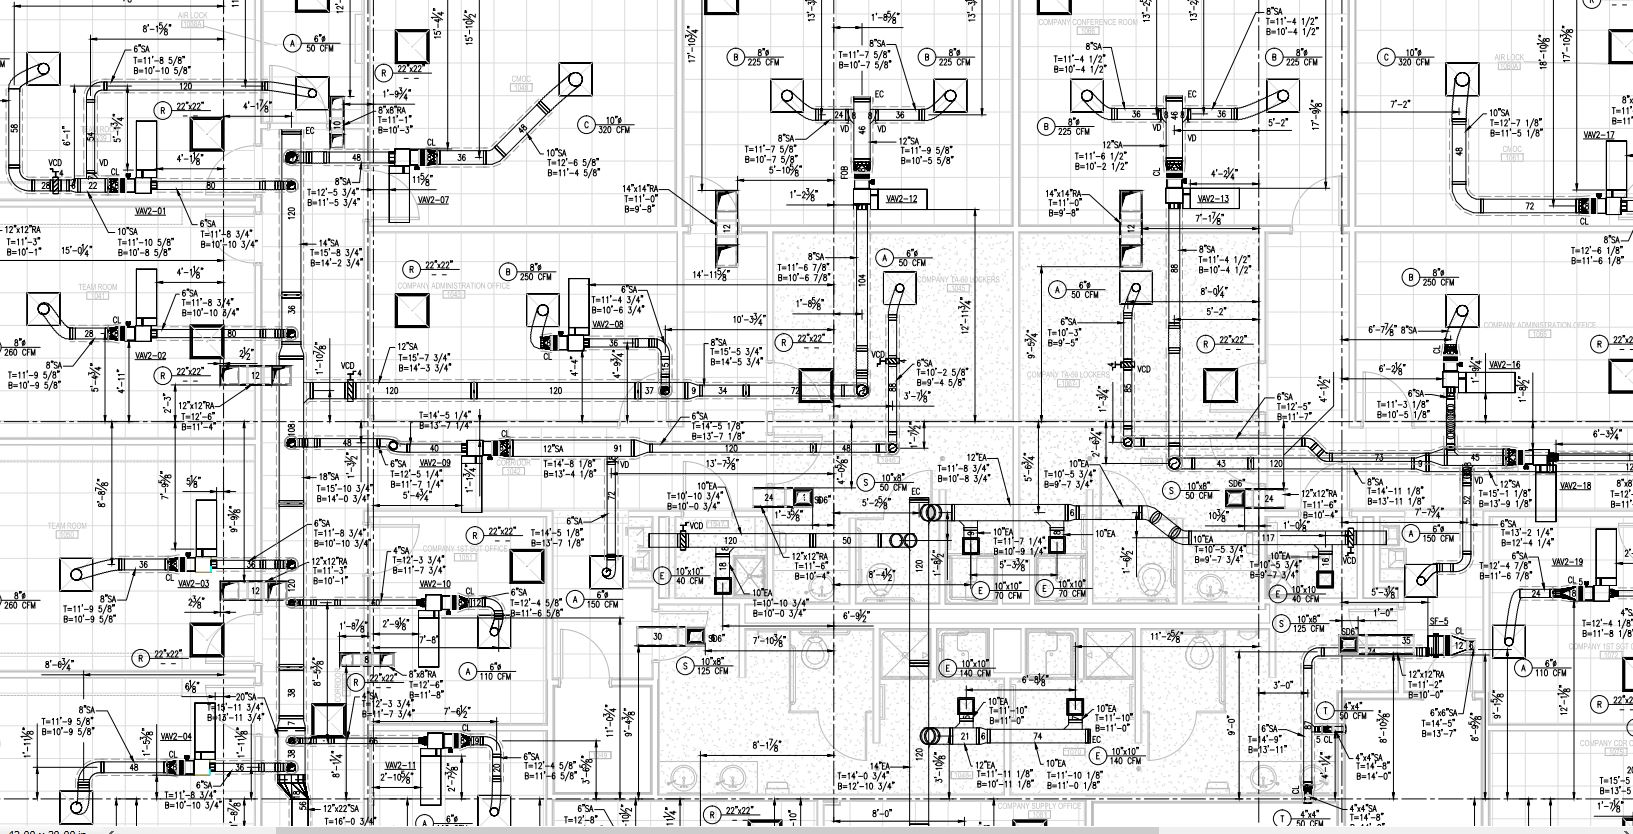 Hvac Installation Drawing Wiring Library Duct In Autocad 2d Or Shop Drawings Virtual Design Engineering